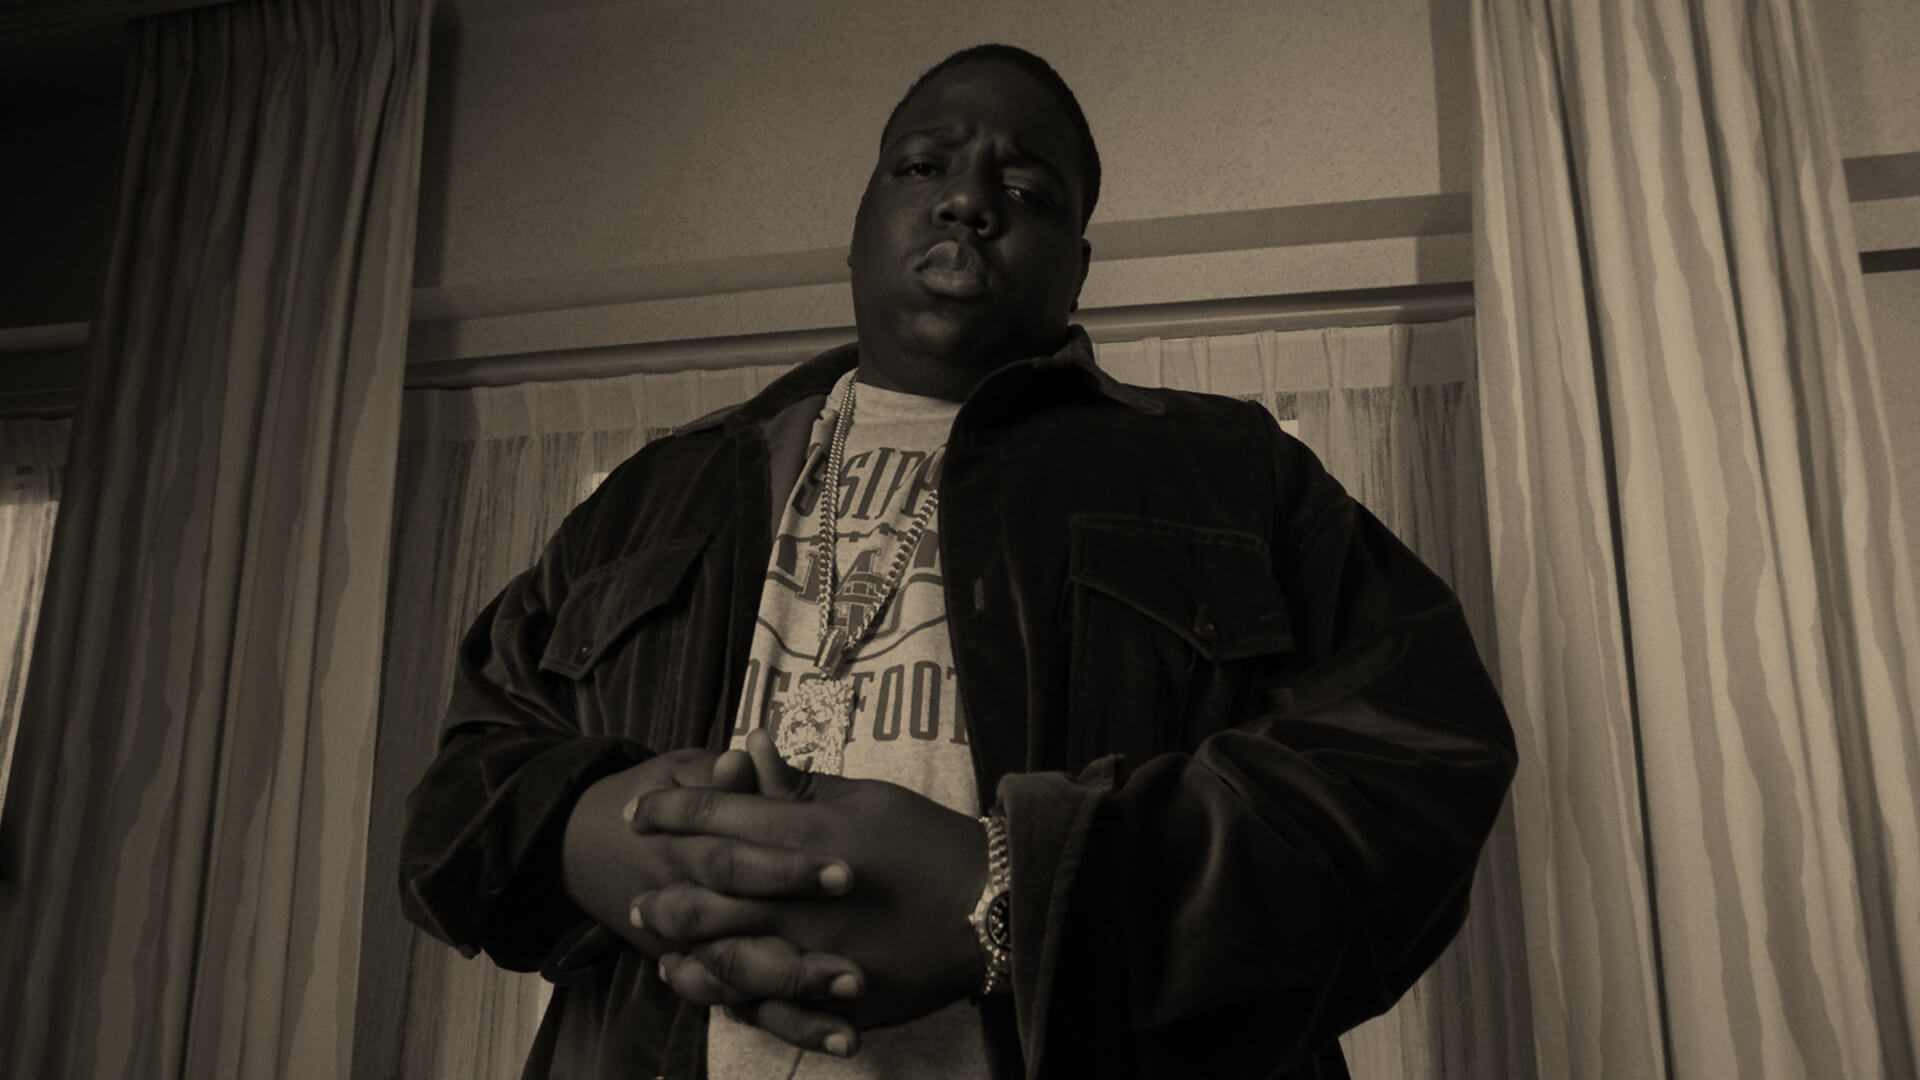 Top 15 Notorious B.I.G. Songs